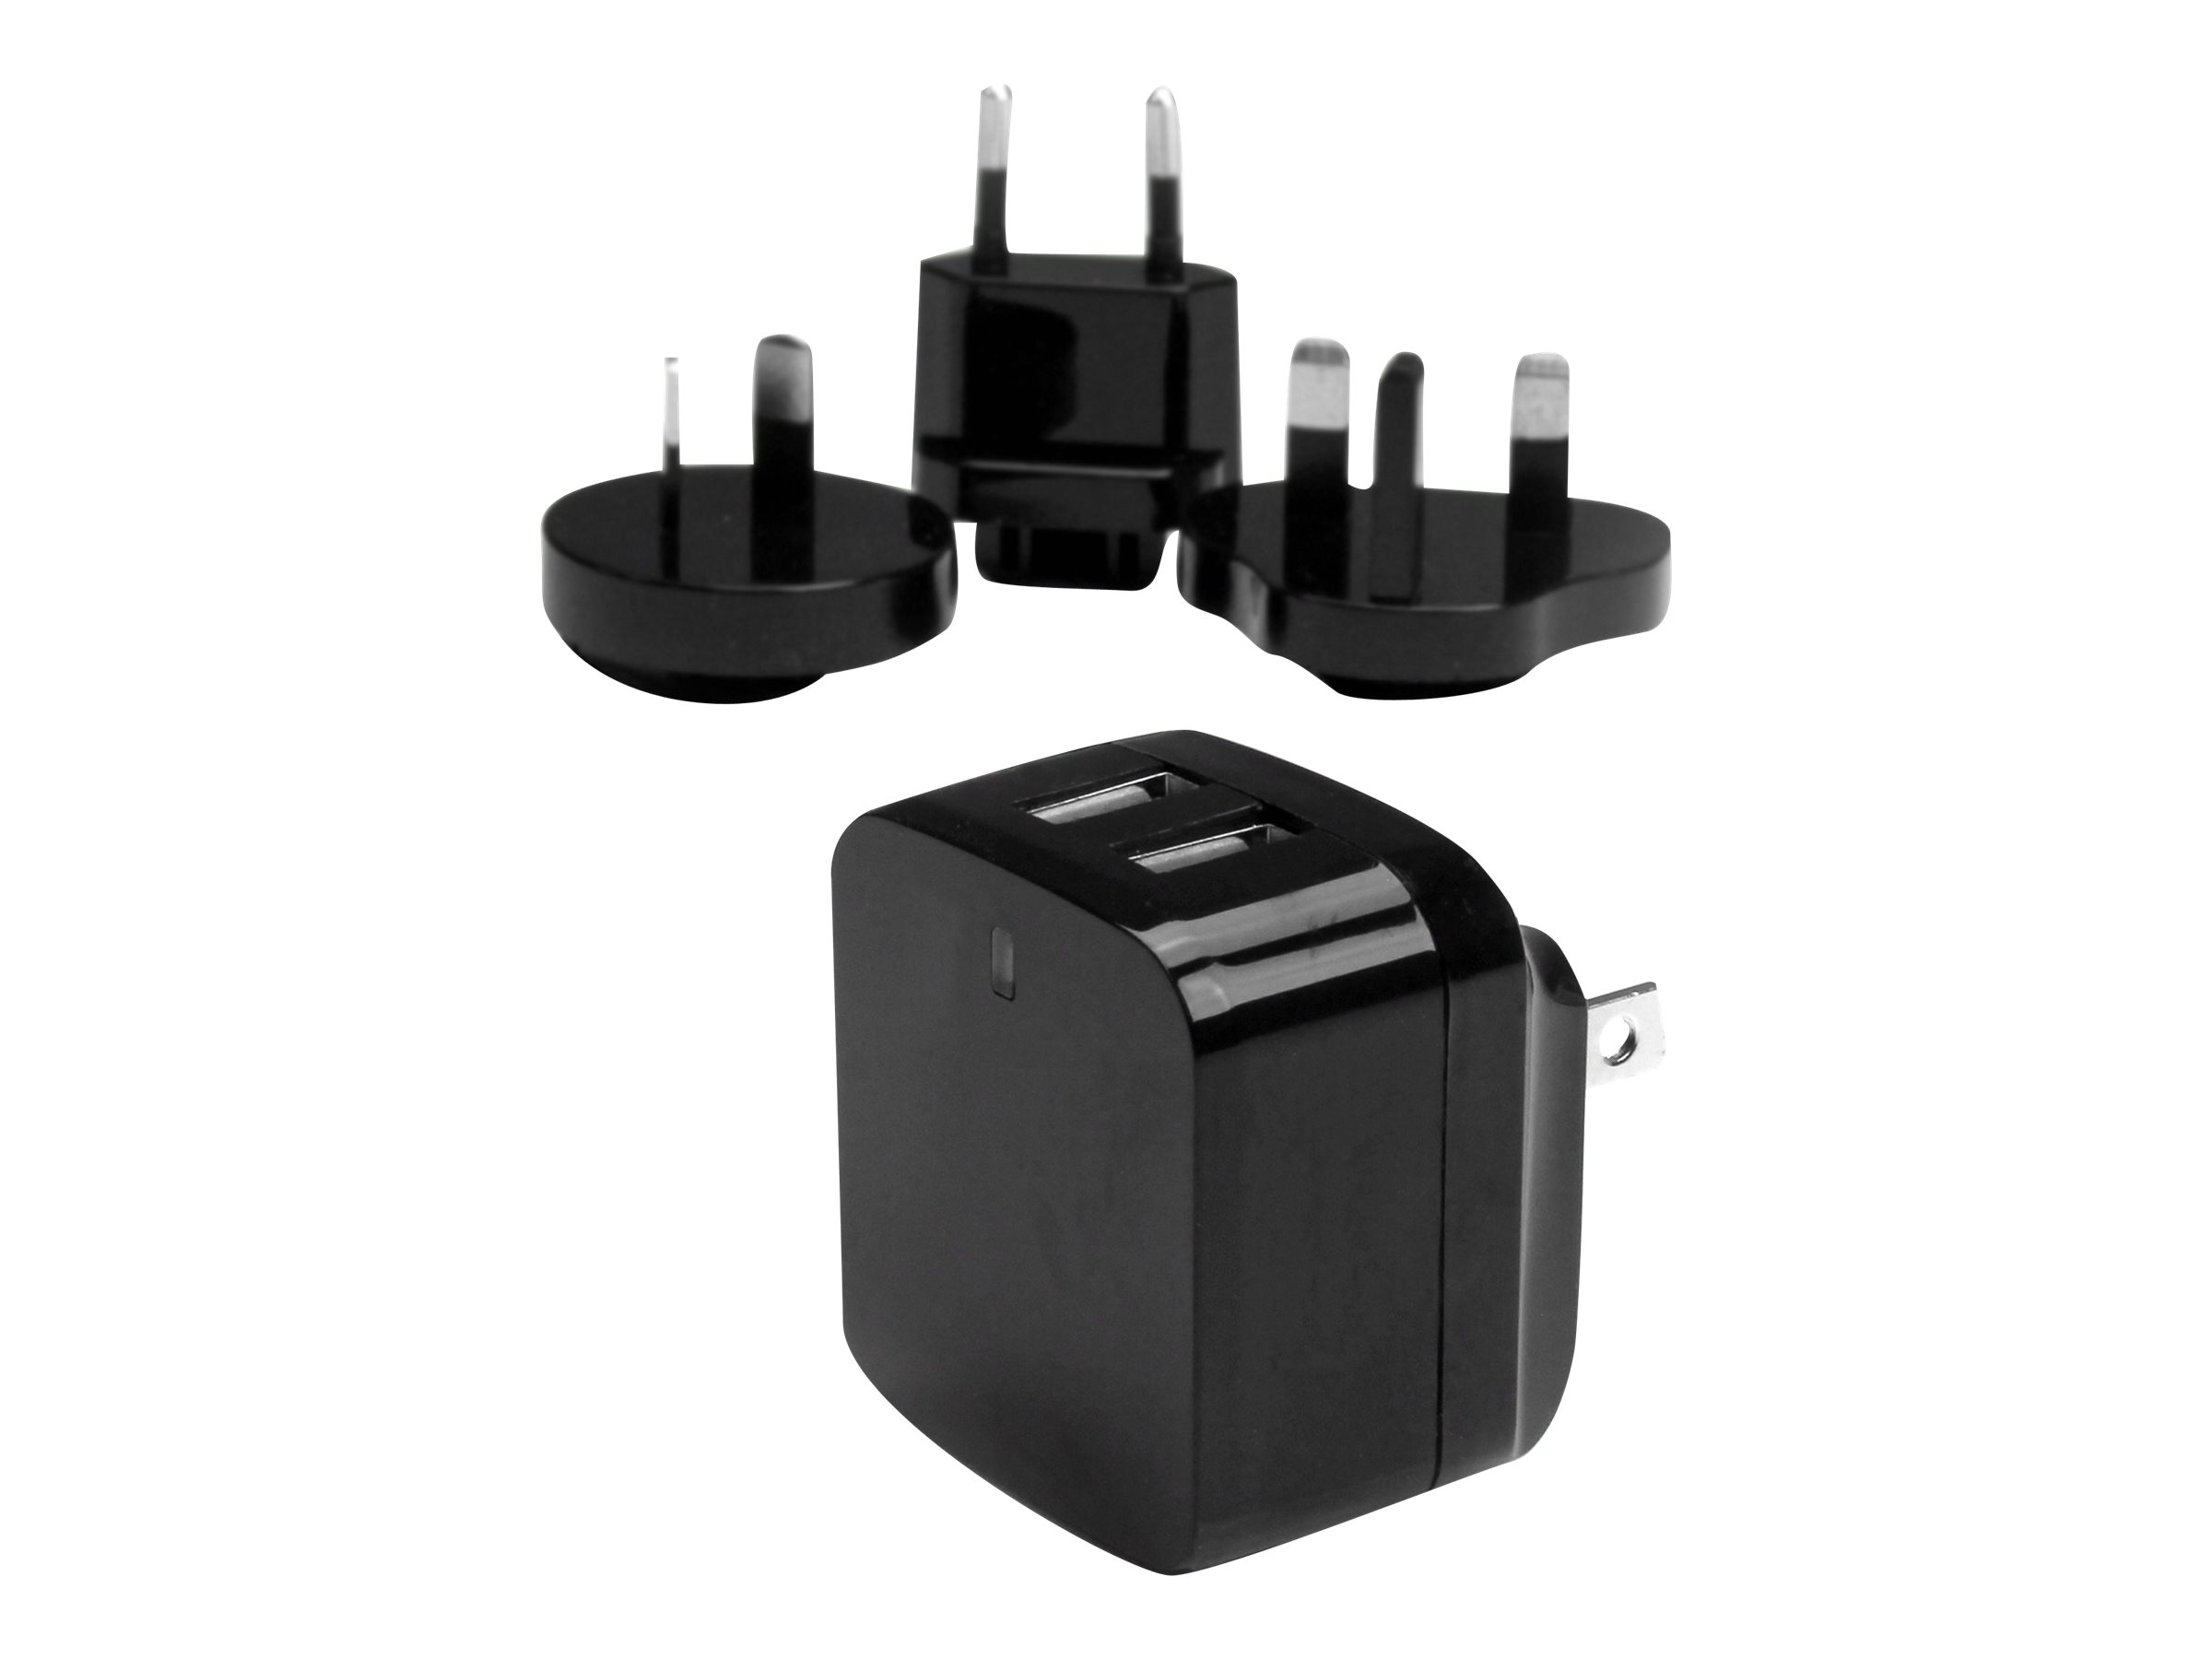 StarTech.com Travel USB Wall Charger - 2 Port - Black - Universal Travel Adapter - International Power Adapter - USB Charger (USB2PACBK) power adapter - USB - 17 Watt